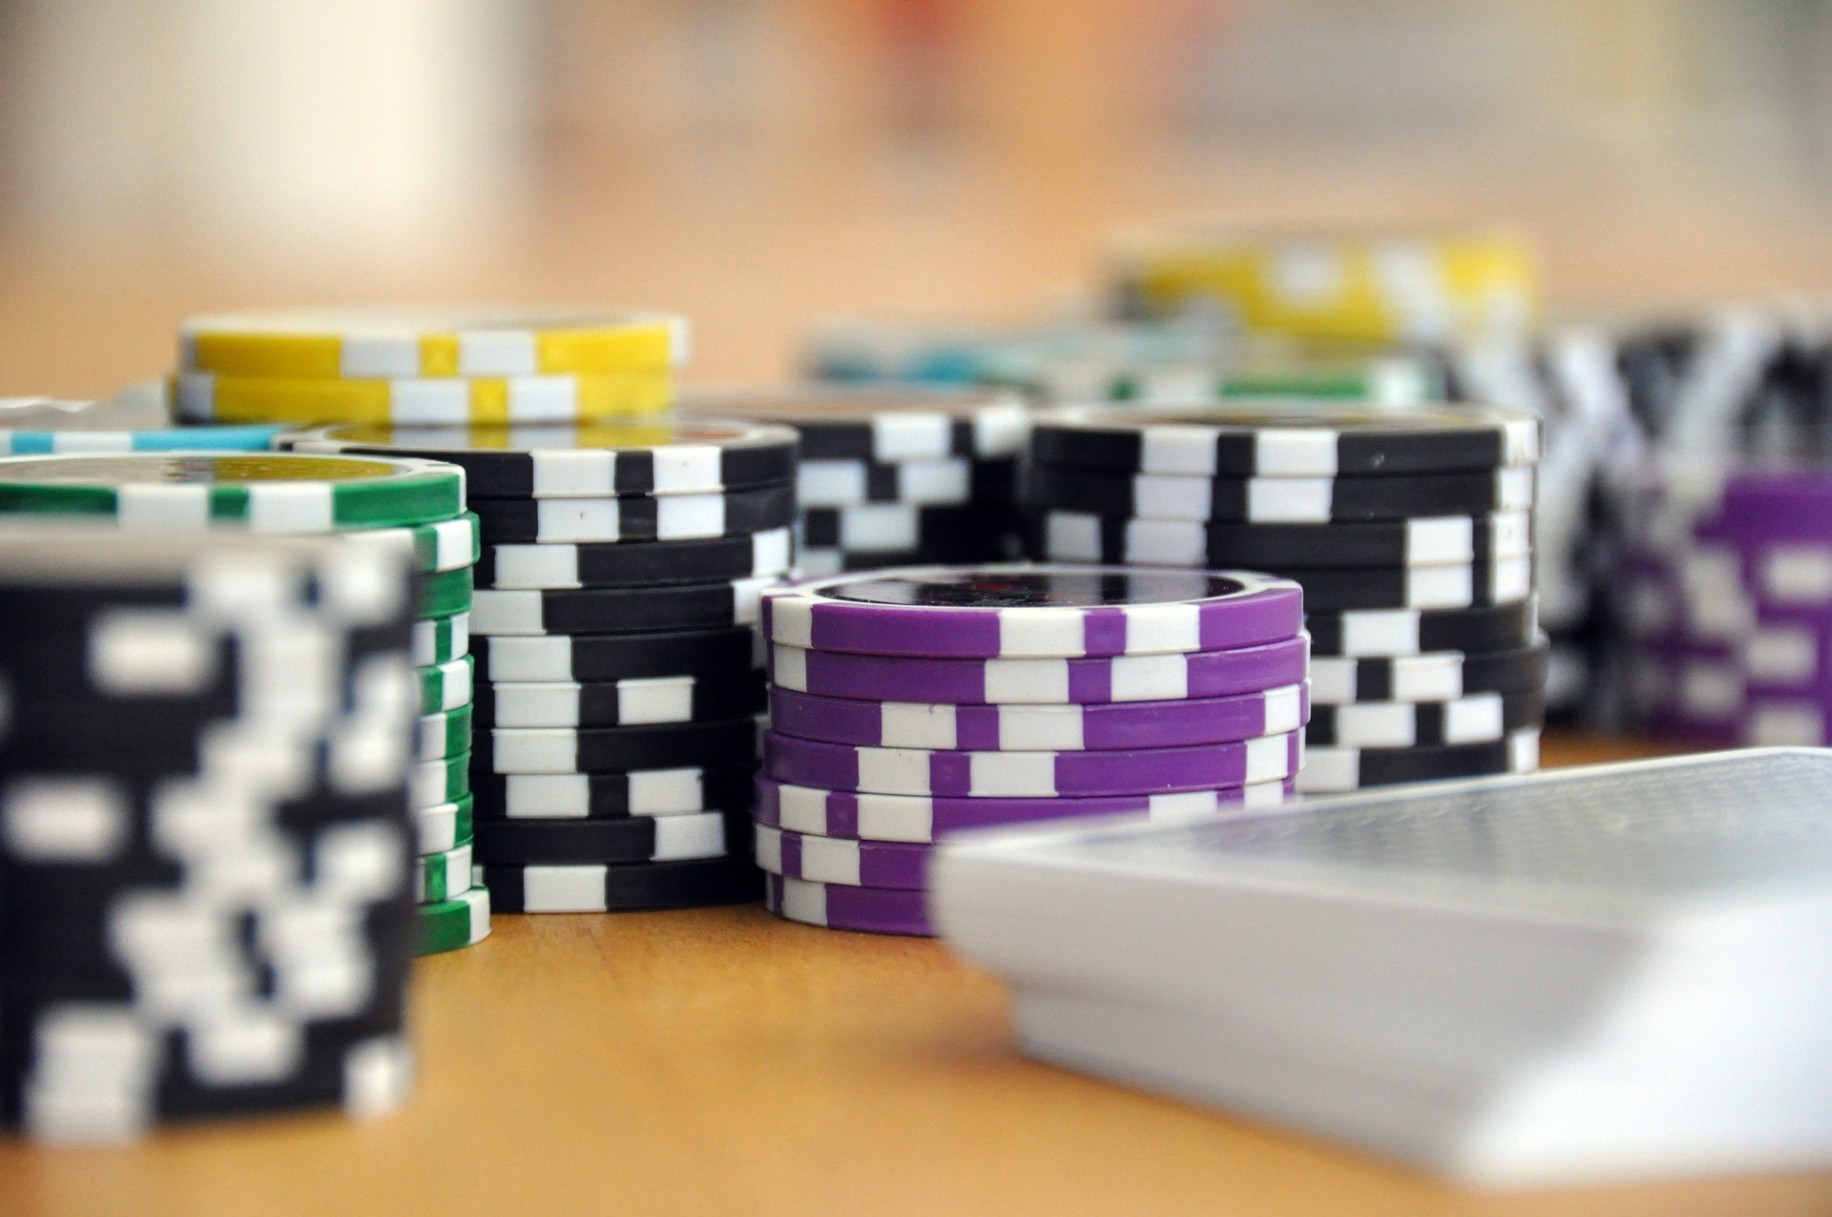 Why do people prefer online gambling nowadays?